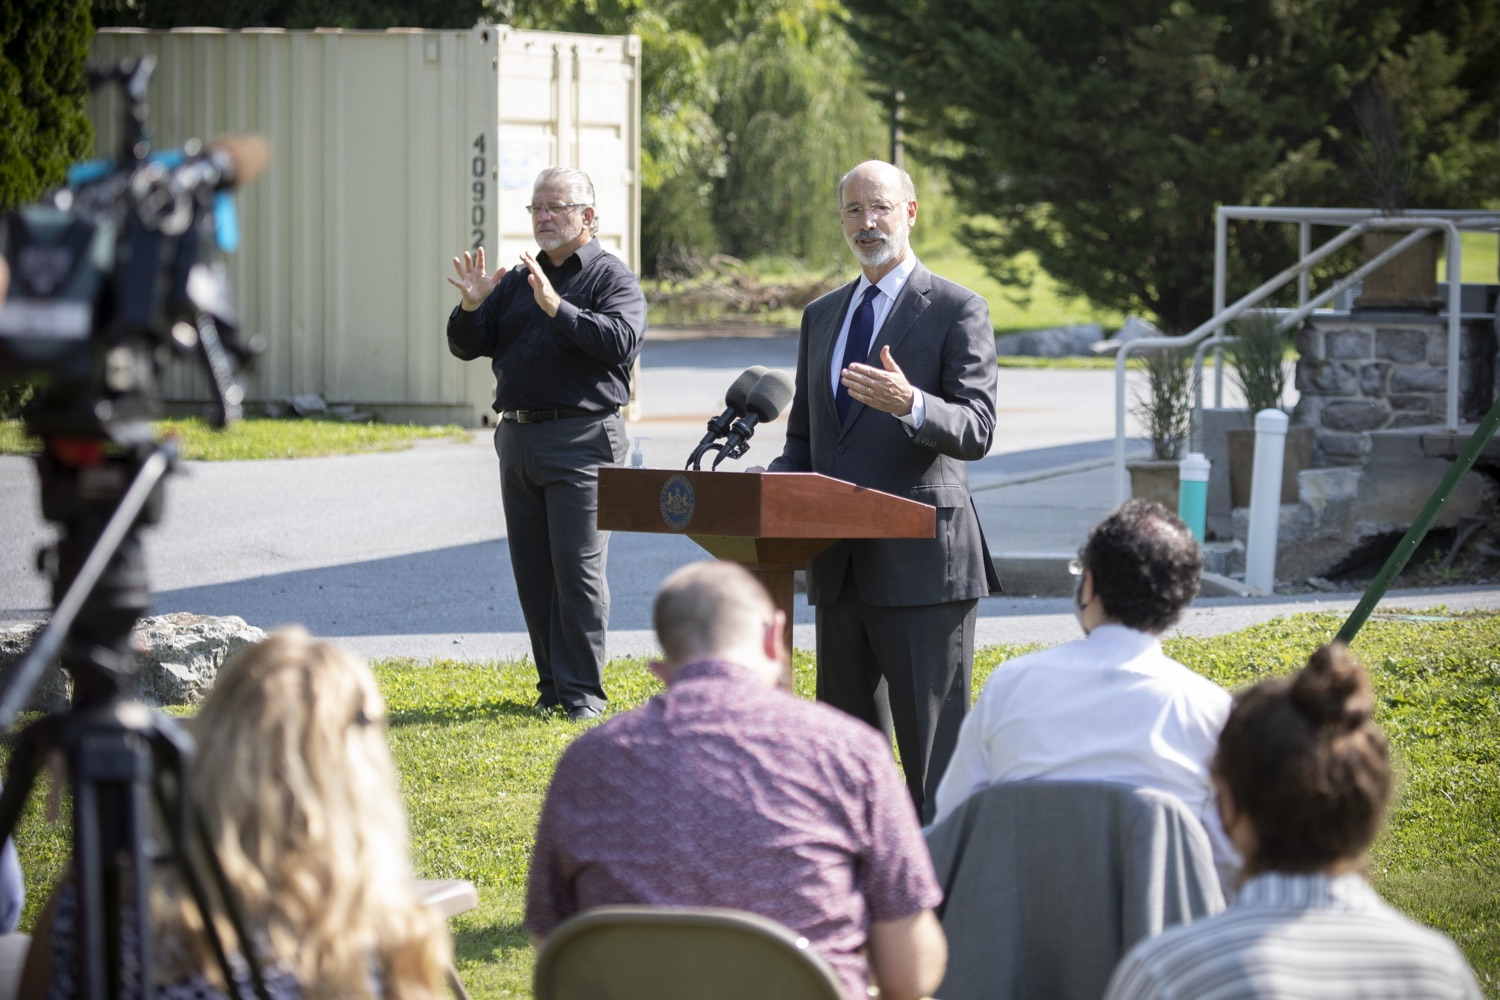 "<a href=""https://filesource.wostreaming.net/commonwealthofpa/photo/18248_gov_evictions_dz_041.jpg"" target=""_blank"">⇣ Download Photo<br></a>Pennsylvania Governor Tom Wolf speaking to the press. With rent and mortgage debt mounting for hundreds of thousands of Pennsylvanians, Governor Tom Wolf is calling on the General Assembly to fix a state relief program to prevent many families from becoming homeless and enact a moratorium on evictions and foreclosures until the end of the year. The governor was joined today by legislators and housing advocates at a press conference in Lancaster County. Harrisburg, PA  Sept. 8, 2020"